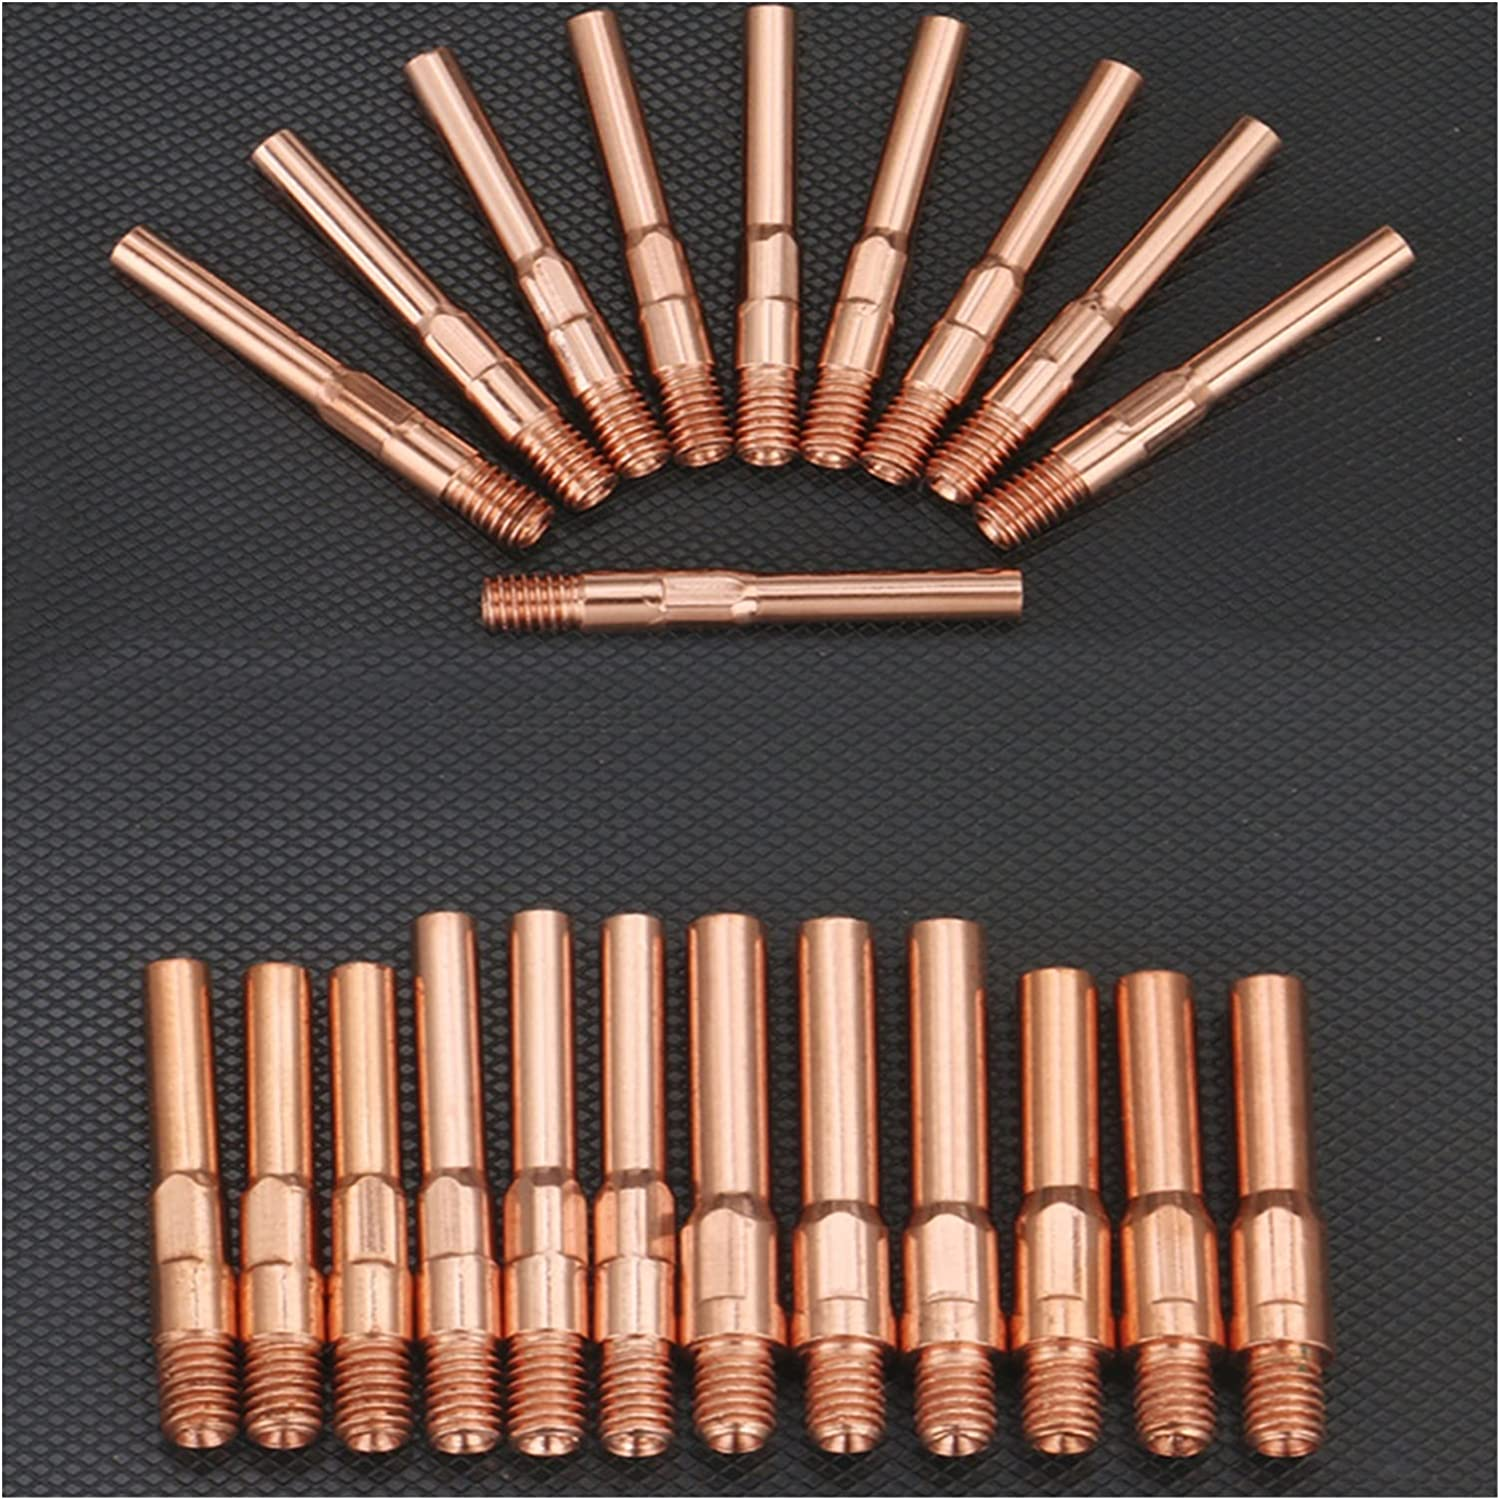 Welding nozzle 10 Pcs M6x6.5 Multipu Tips Beauty products New products, world's highest quality popular! Nozzle Contact